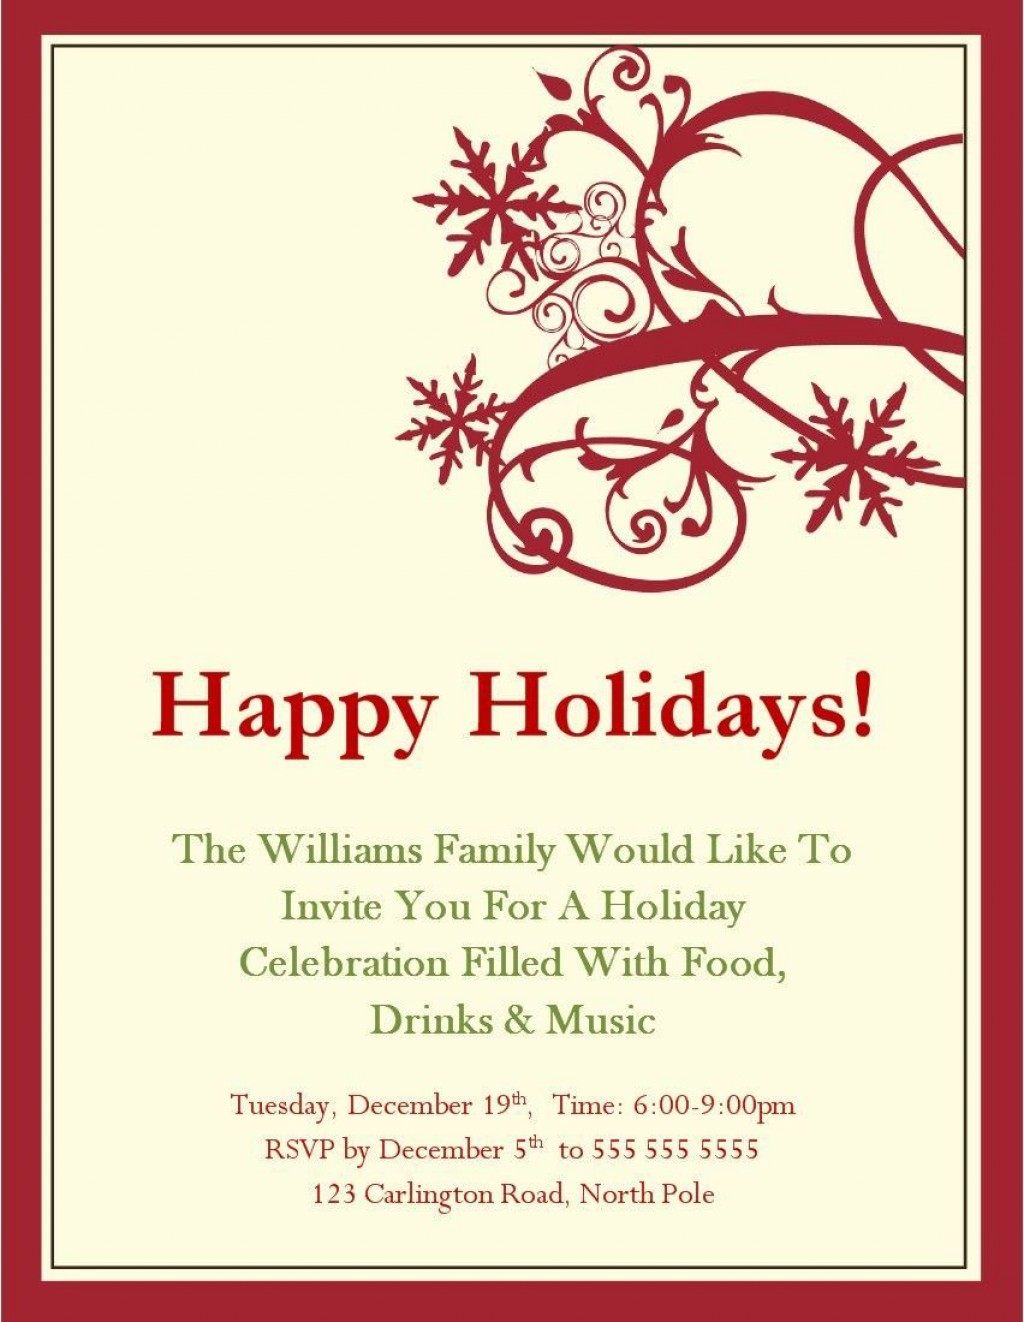 003 Remarkable Free Online Holiday Invitation Template High Def  TemplatesLarge